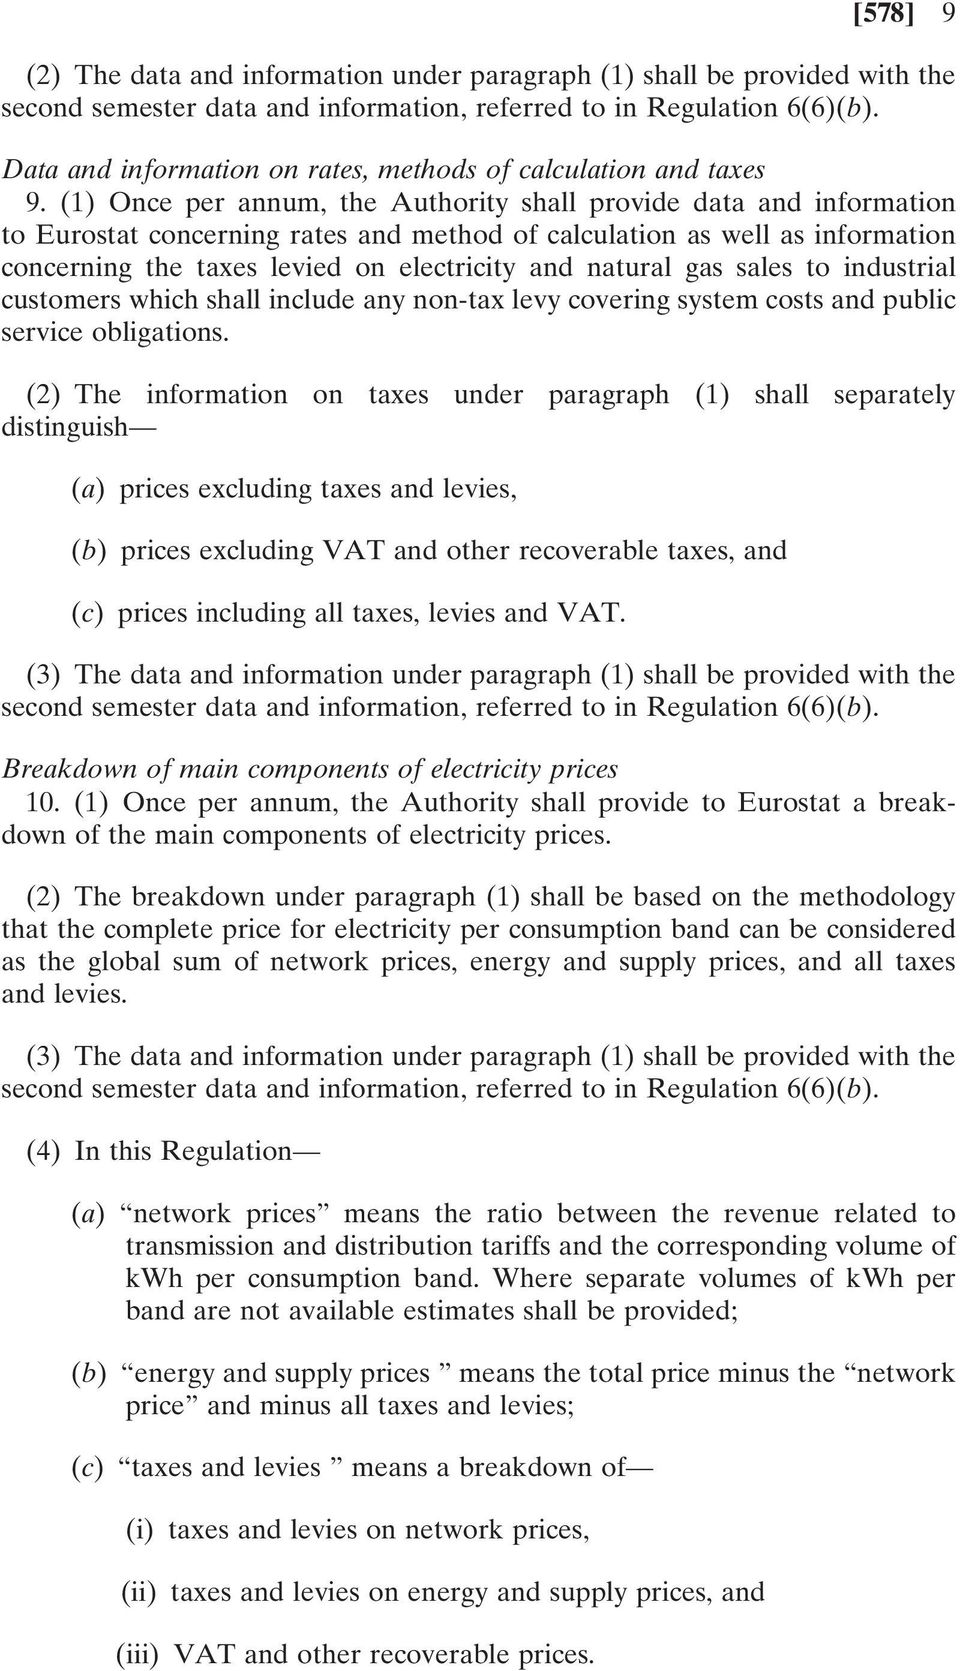 (1) Once per annum, the Authority shall provide data and information to Eurostat concerning rates and method of calculation as well as information concerning the taxes levied on electricity and